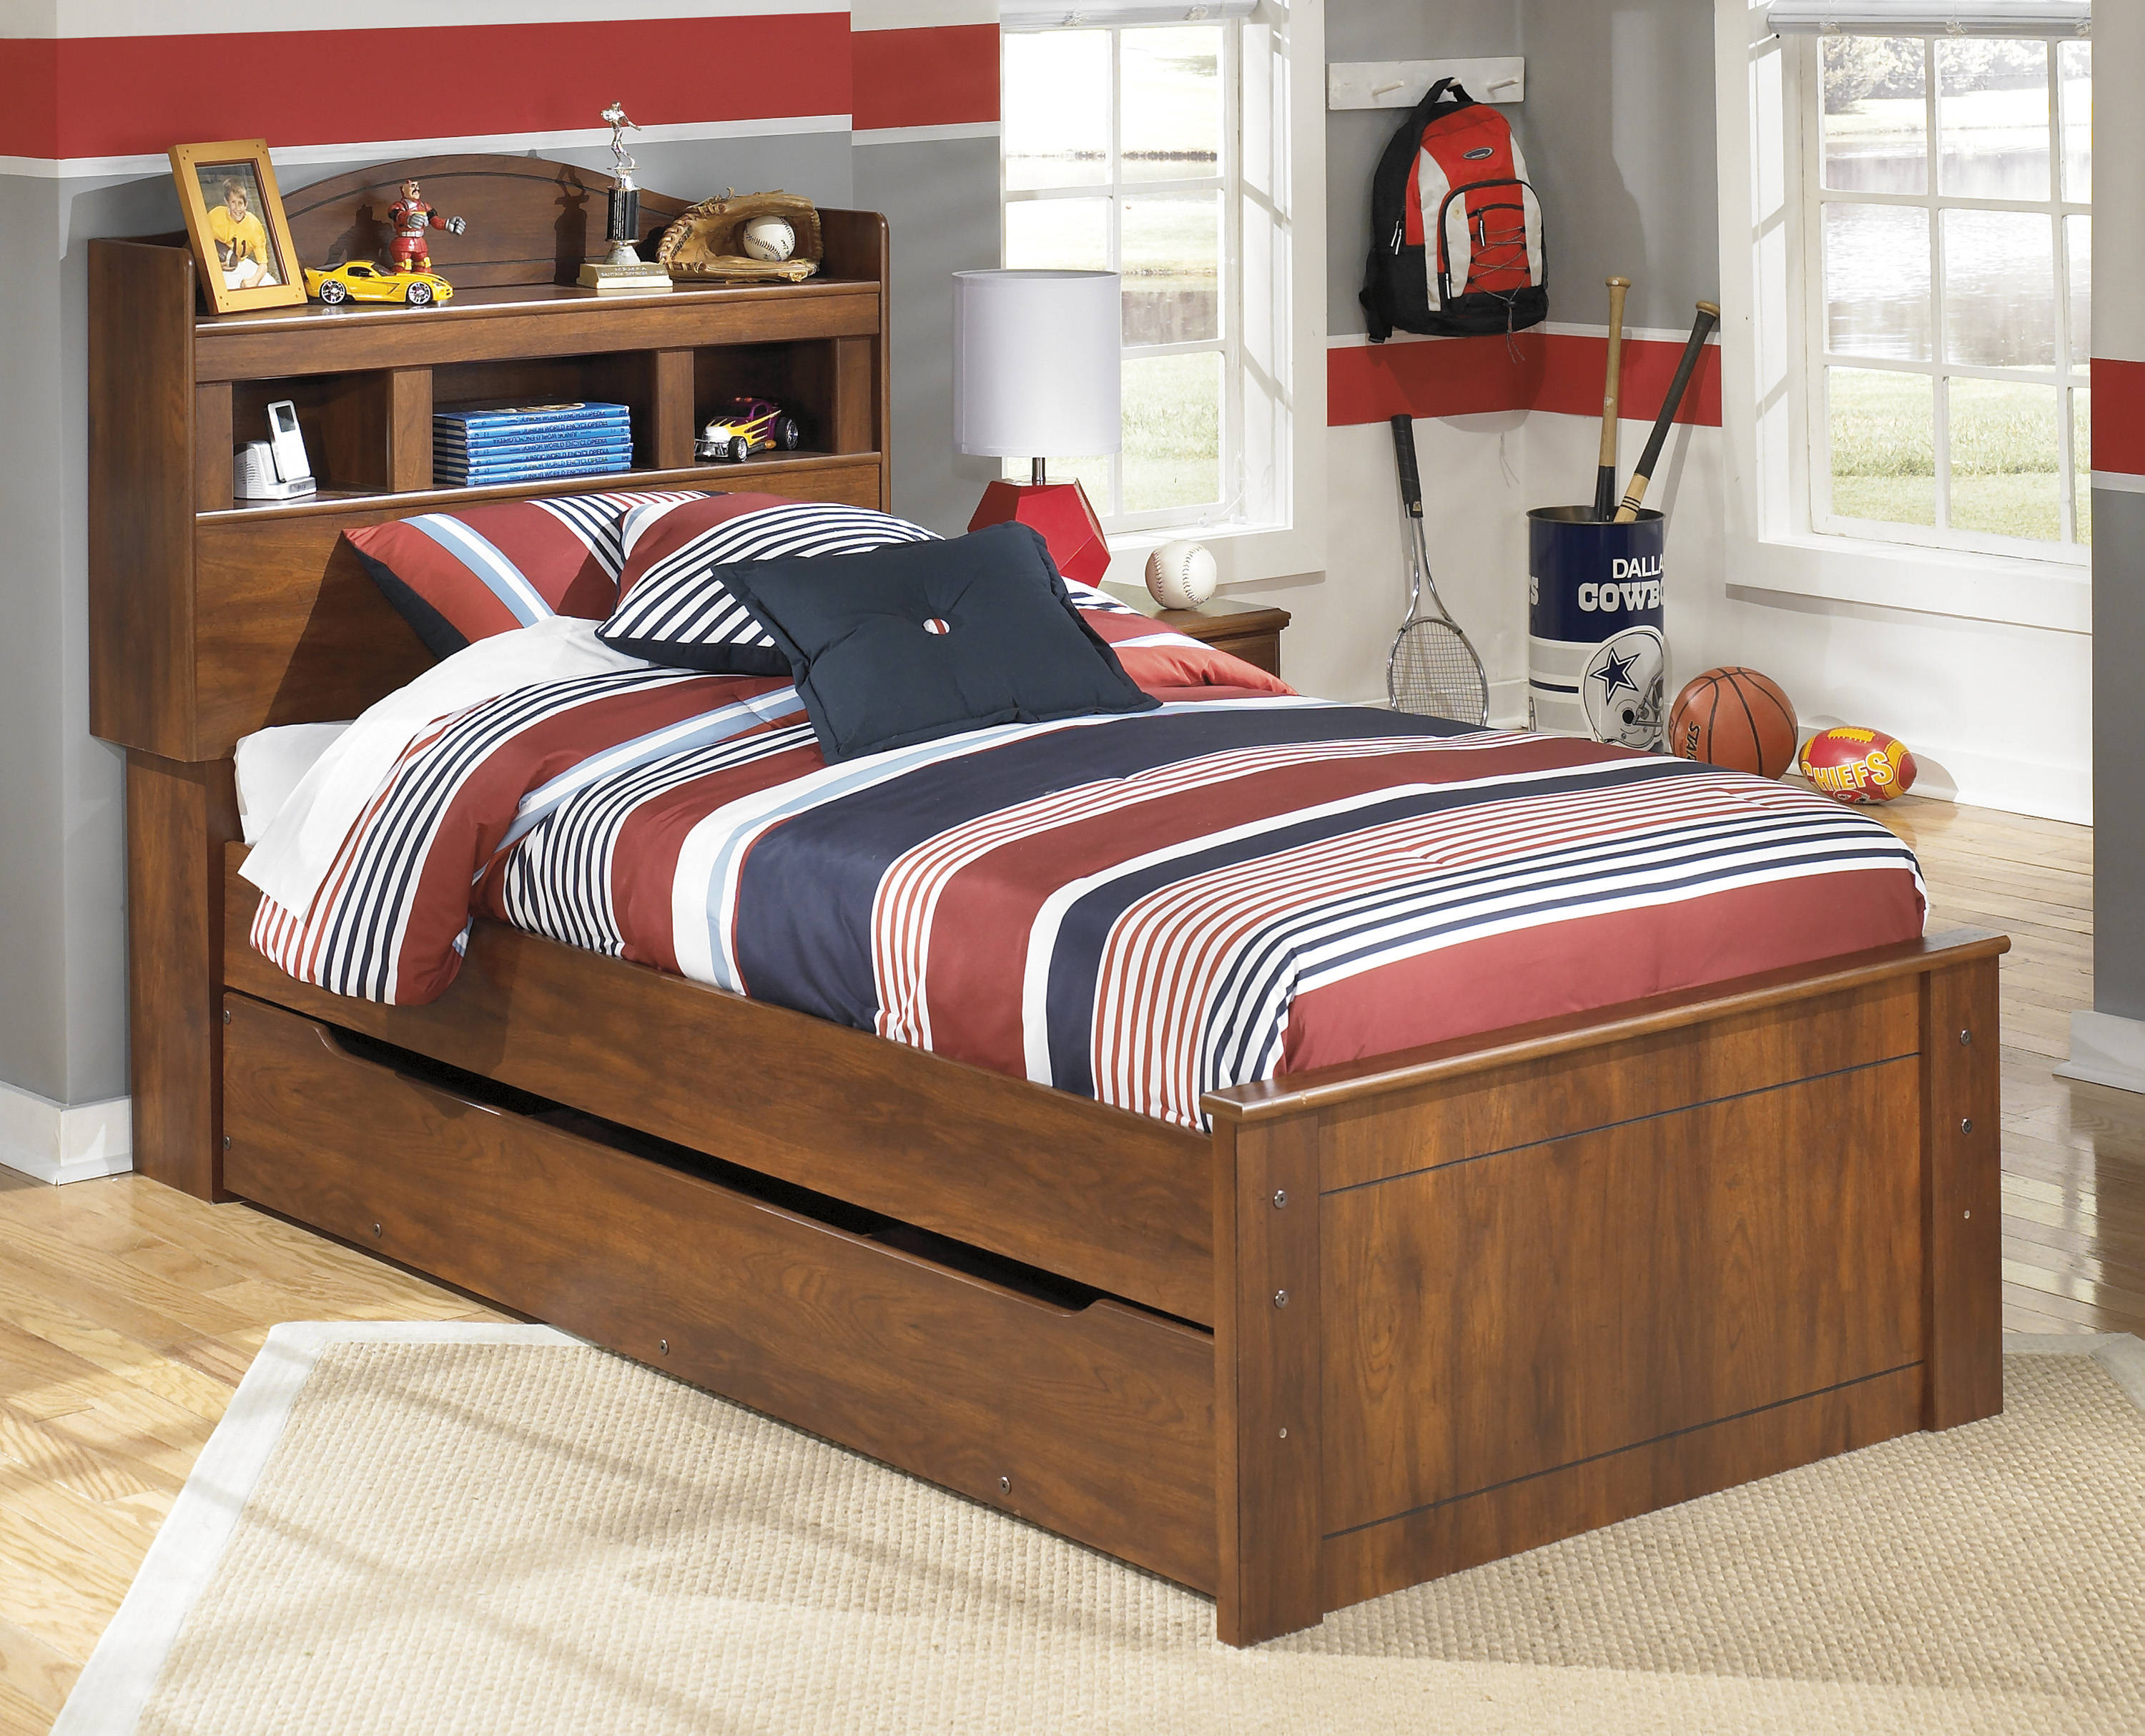 Ashley Furniture Barchan Trundle Bookcase Beds The Classy Home